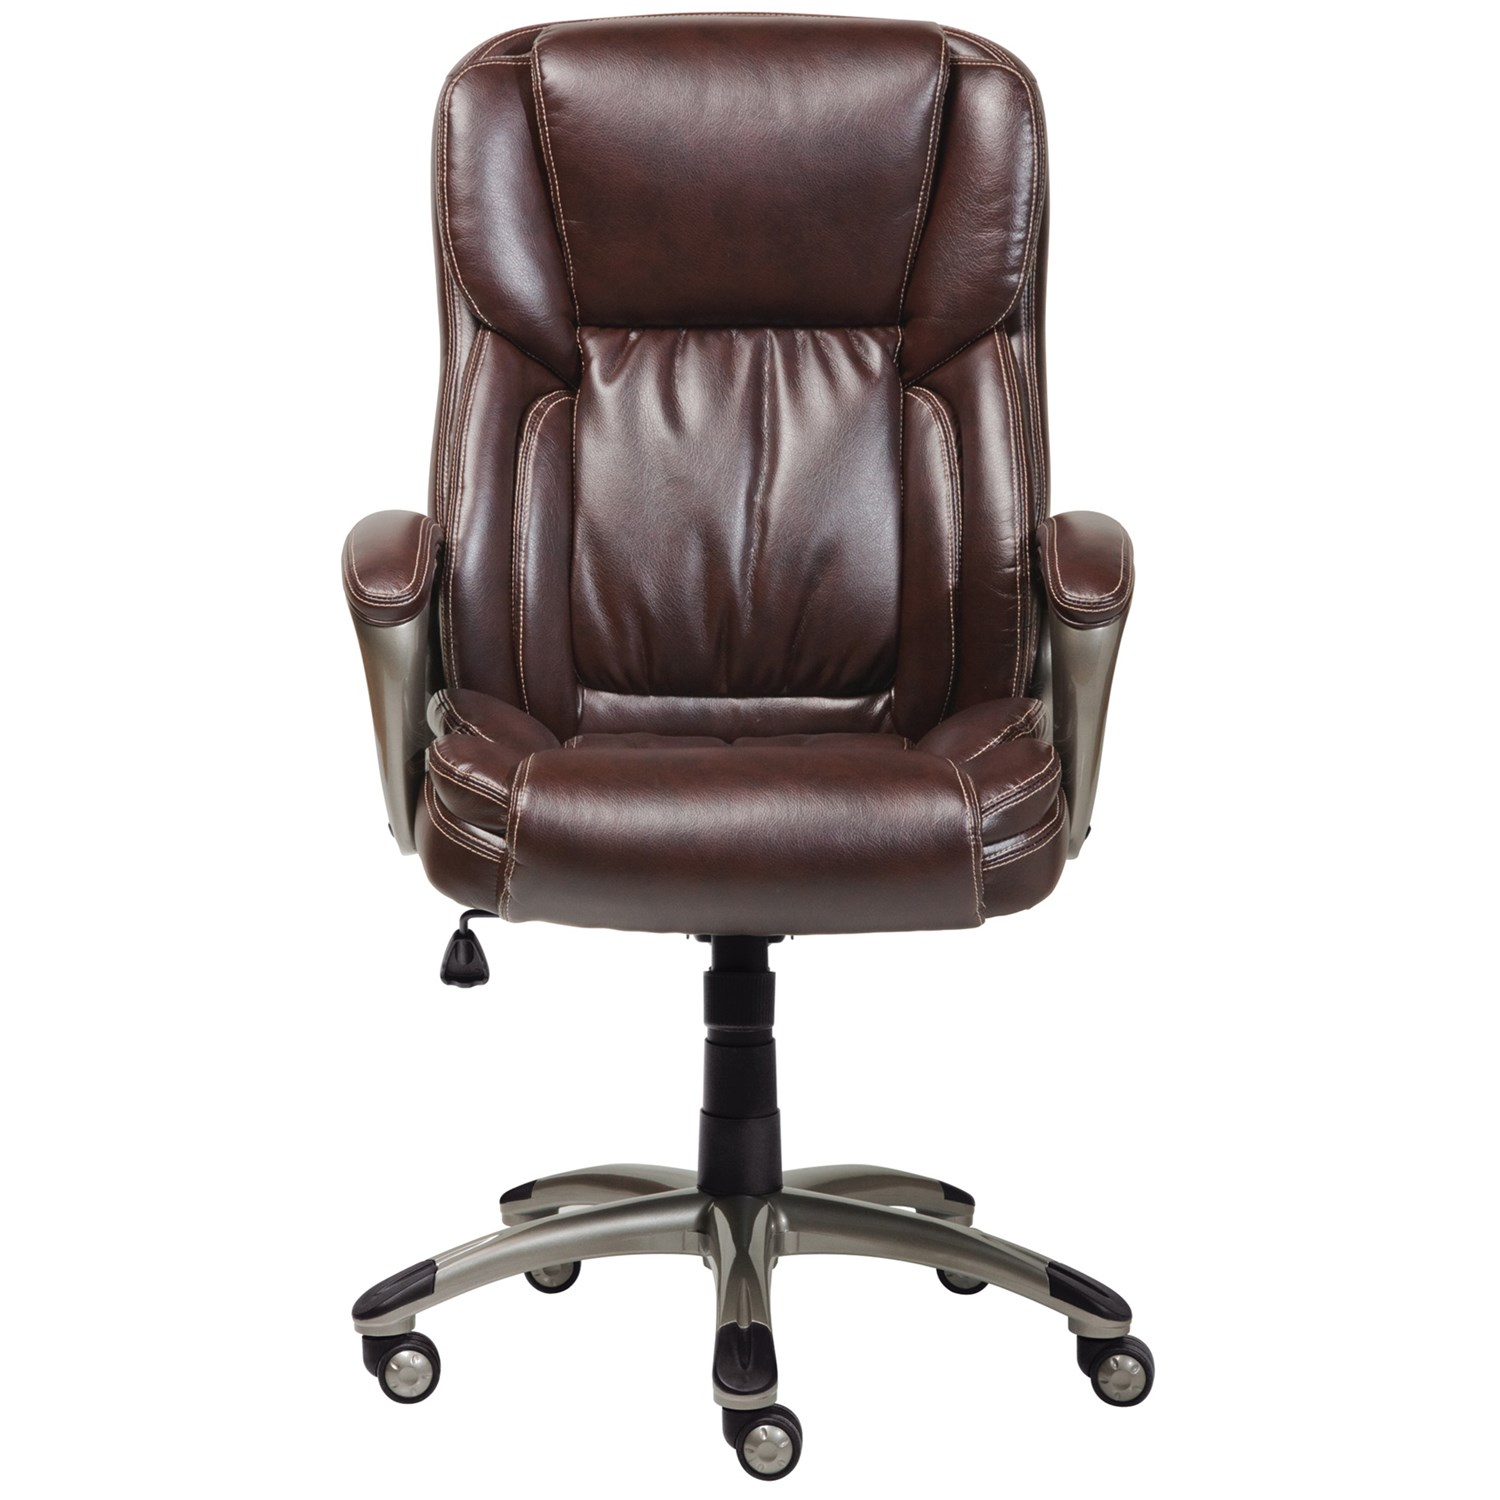 home with serta tailored executive chair office garden overstock today reach shipping product my free fit